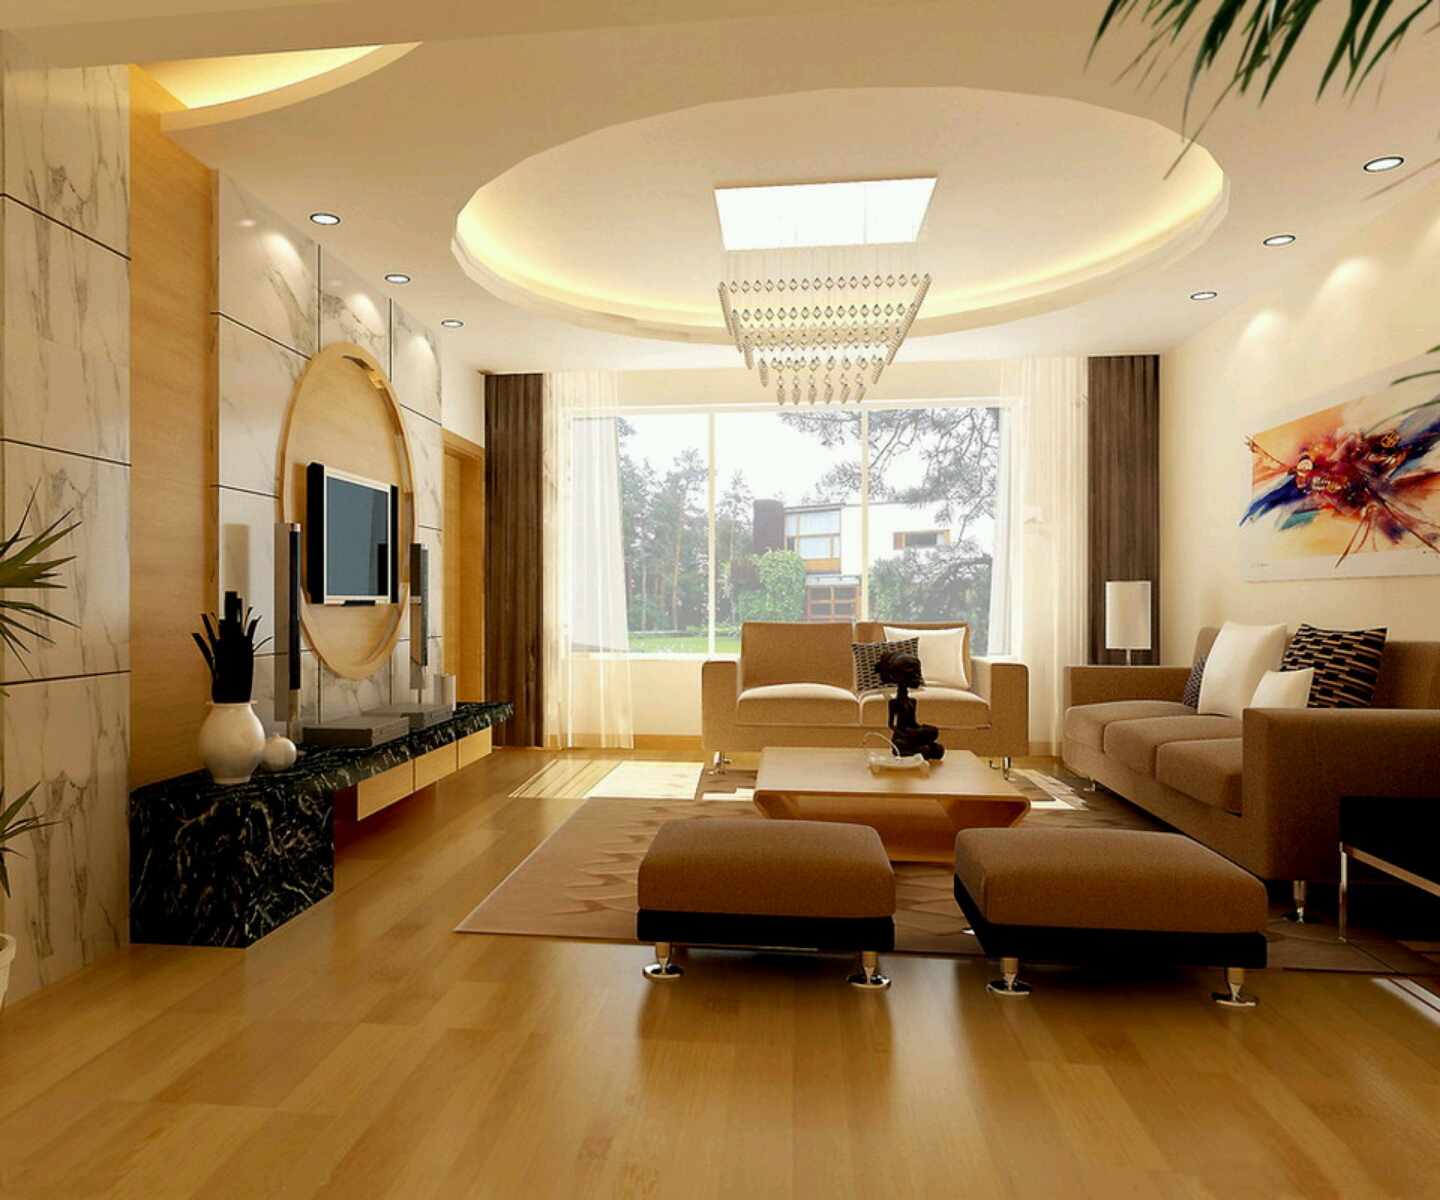 Modern interior decoration living rooms ceiling designs for Www sitting room design